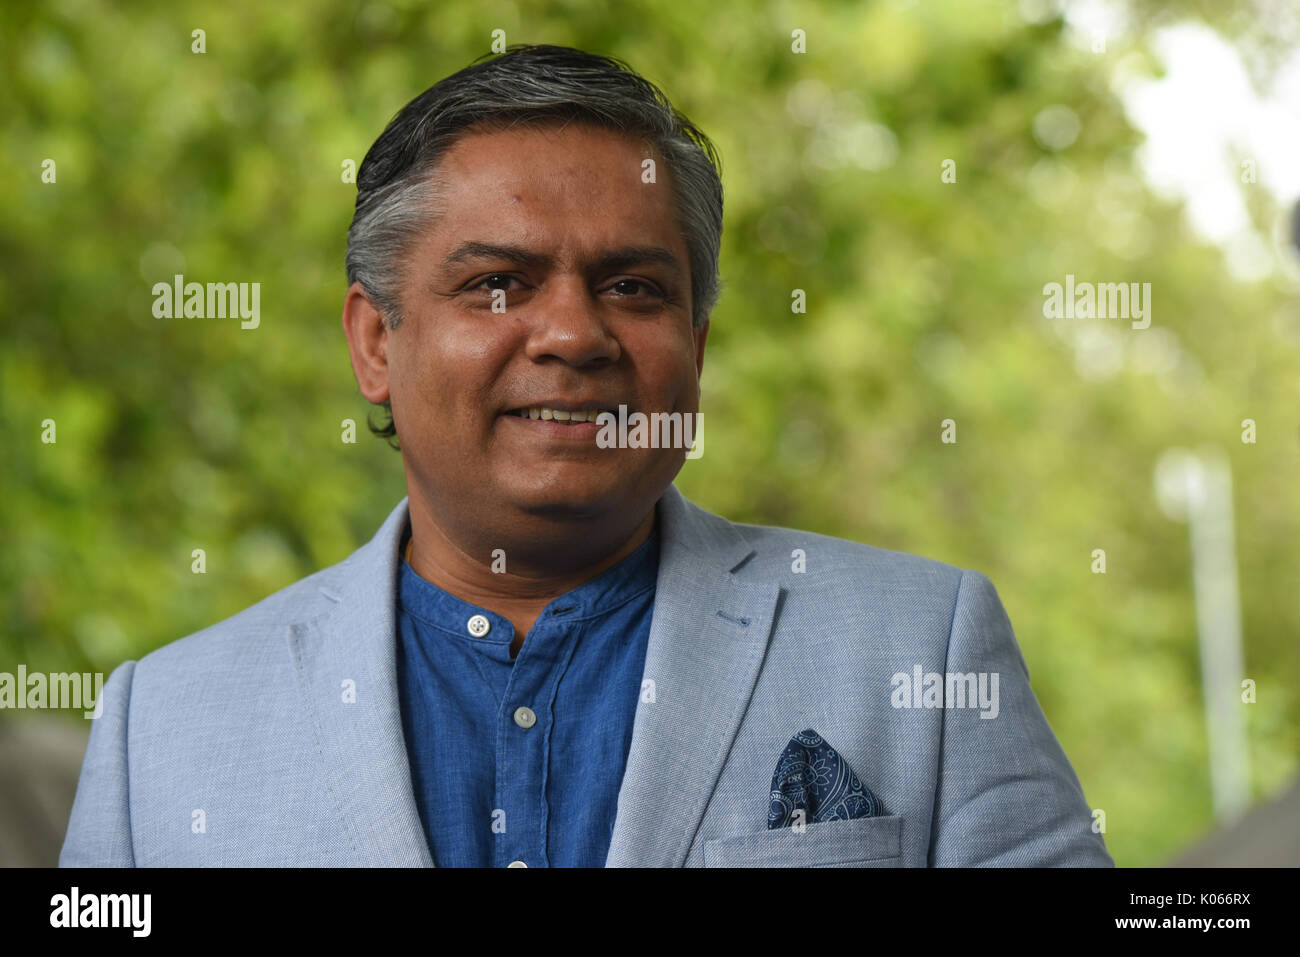 Edinburgh International Book Festival, Scotland, UK. 21st Aug, 2017. Edinburgh International Book Festival Monday 21st August. London-based Indian chef of The Cinnamon Club and restaurater Vivek Singh promotes his books at the fesival today. Credit: Stuart Cobley/Alamy Live News - Stock Image